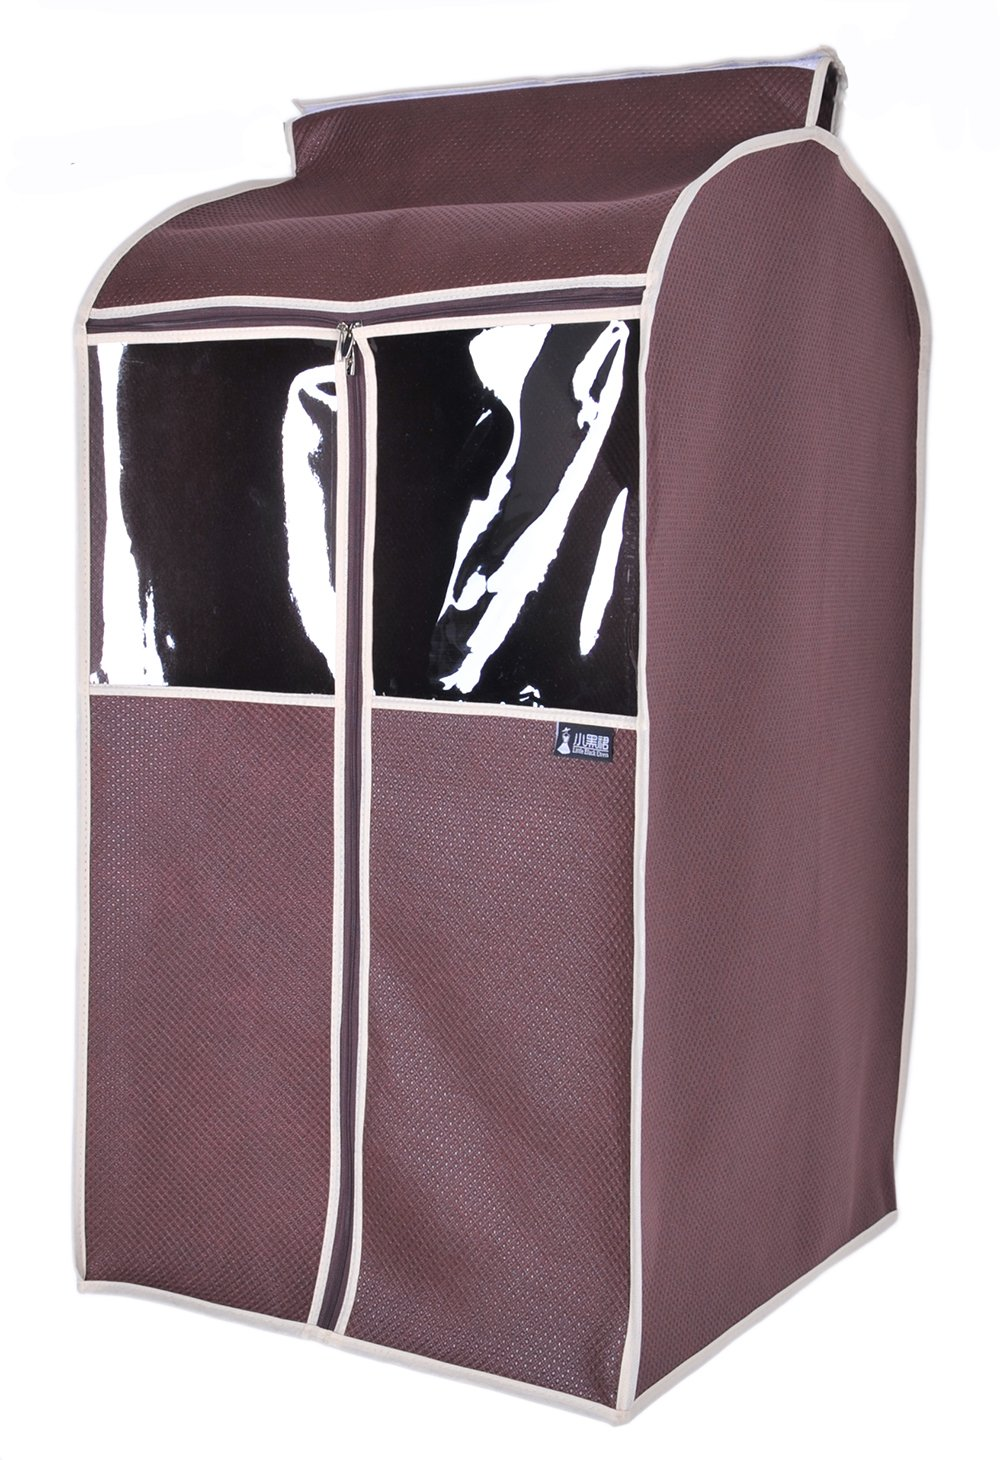 Sturdy Breathable Garment Covers Roomy Suit Storage Bag (L, Coffee)